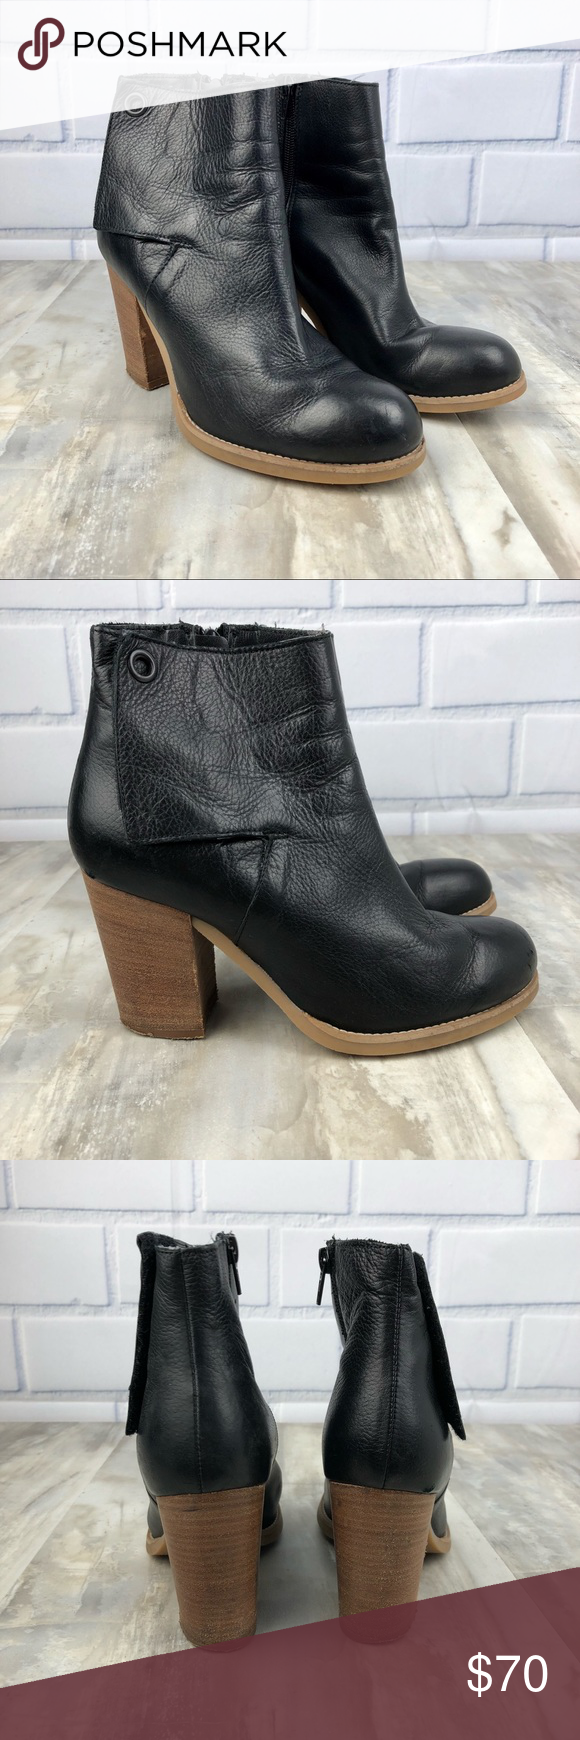 """Sisley Leather Ankle Boots Heels Size 39 Women s Sisley Leather Ankle Boots  Size 39 Black Leather 3.5"""" heel Inner side zip No box No smoking home Sisley  ... c64ce99ff"""